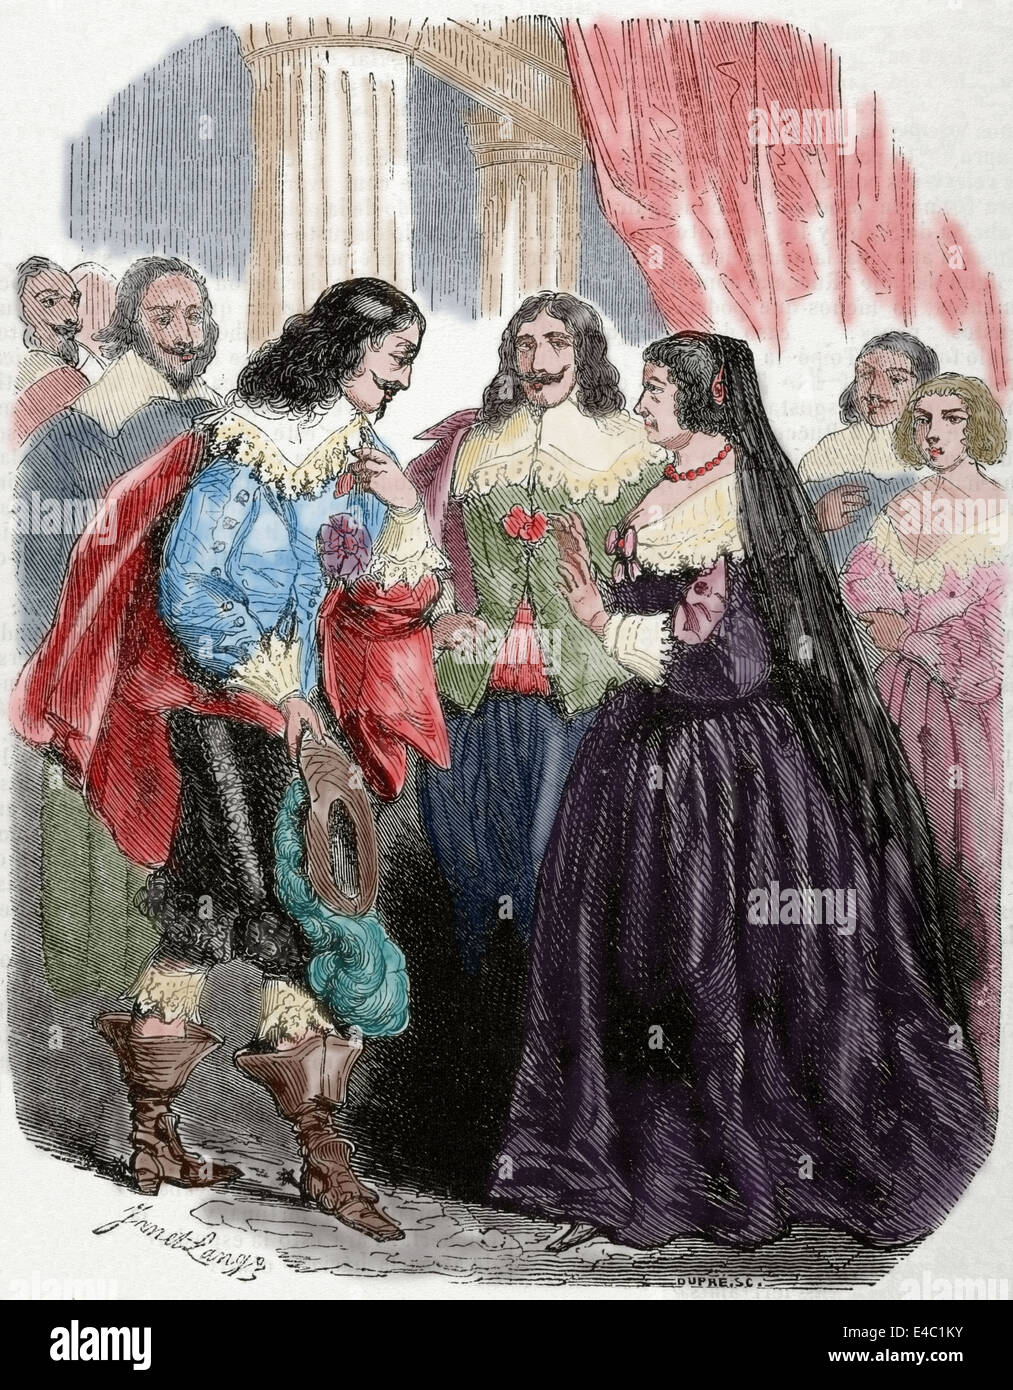 Louis XIII of France (1601-1643). Interview between Louis XIII and his mother Marie de Medici. Castle Coursière - Stock Image